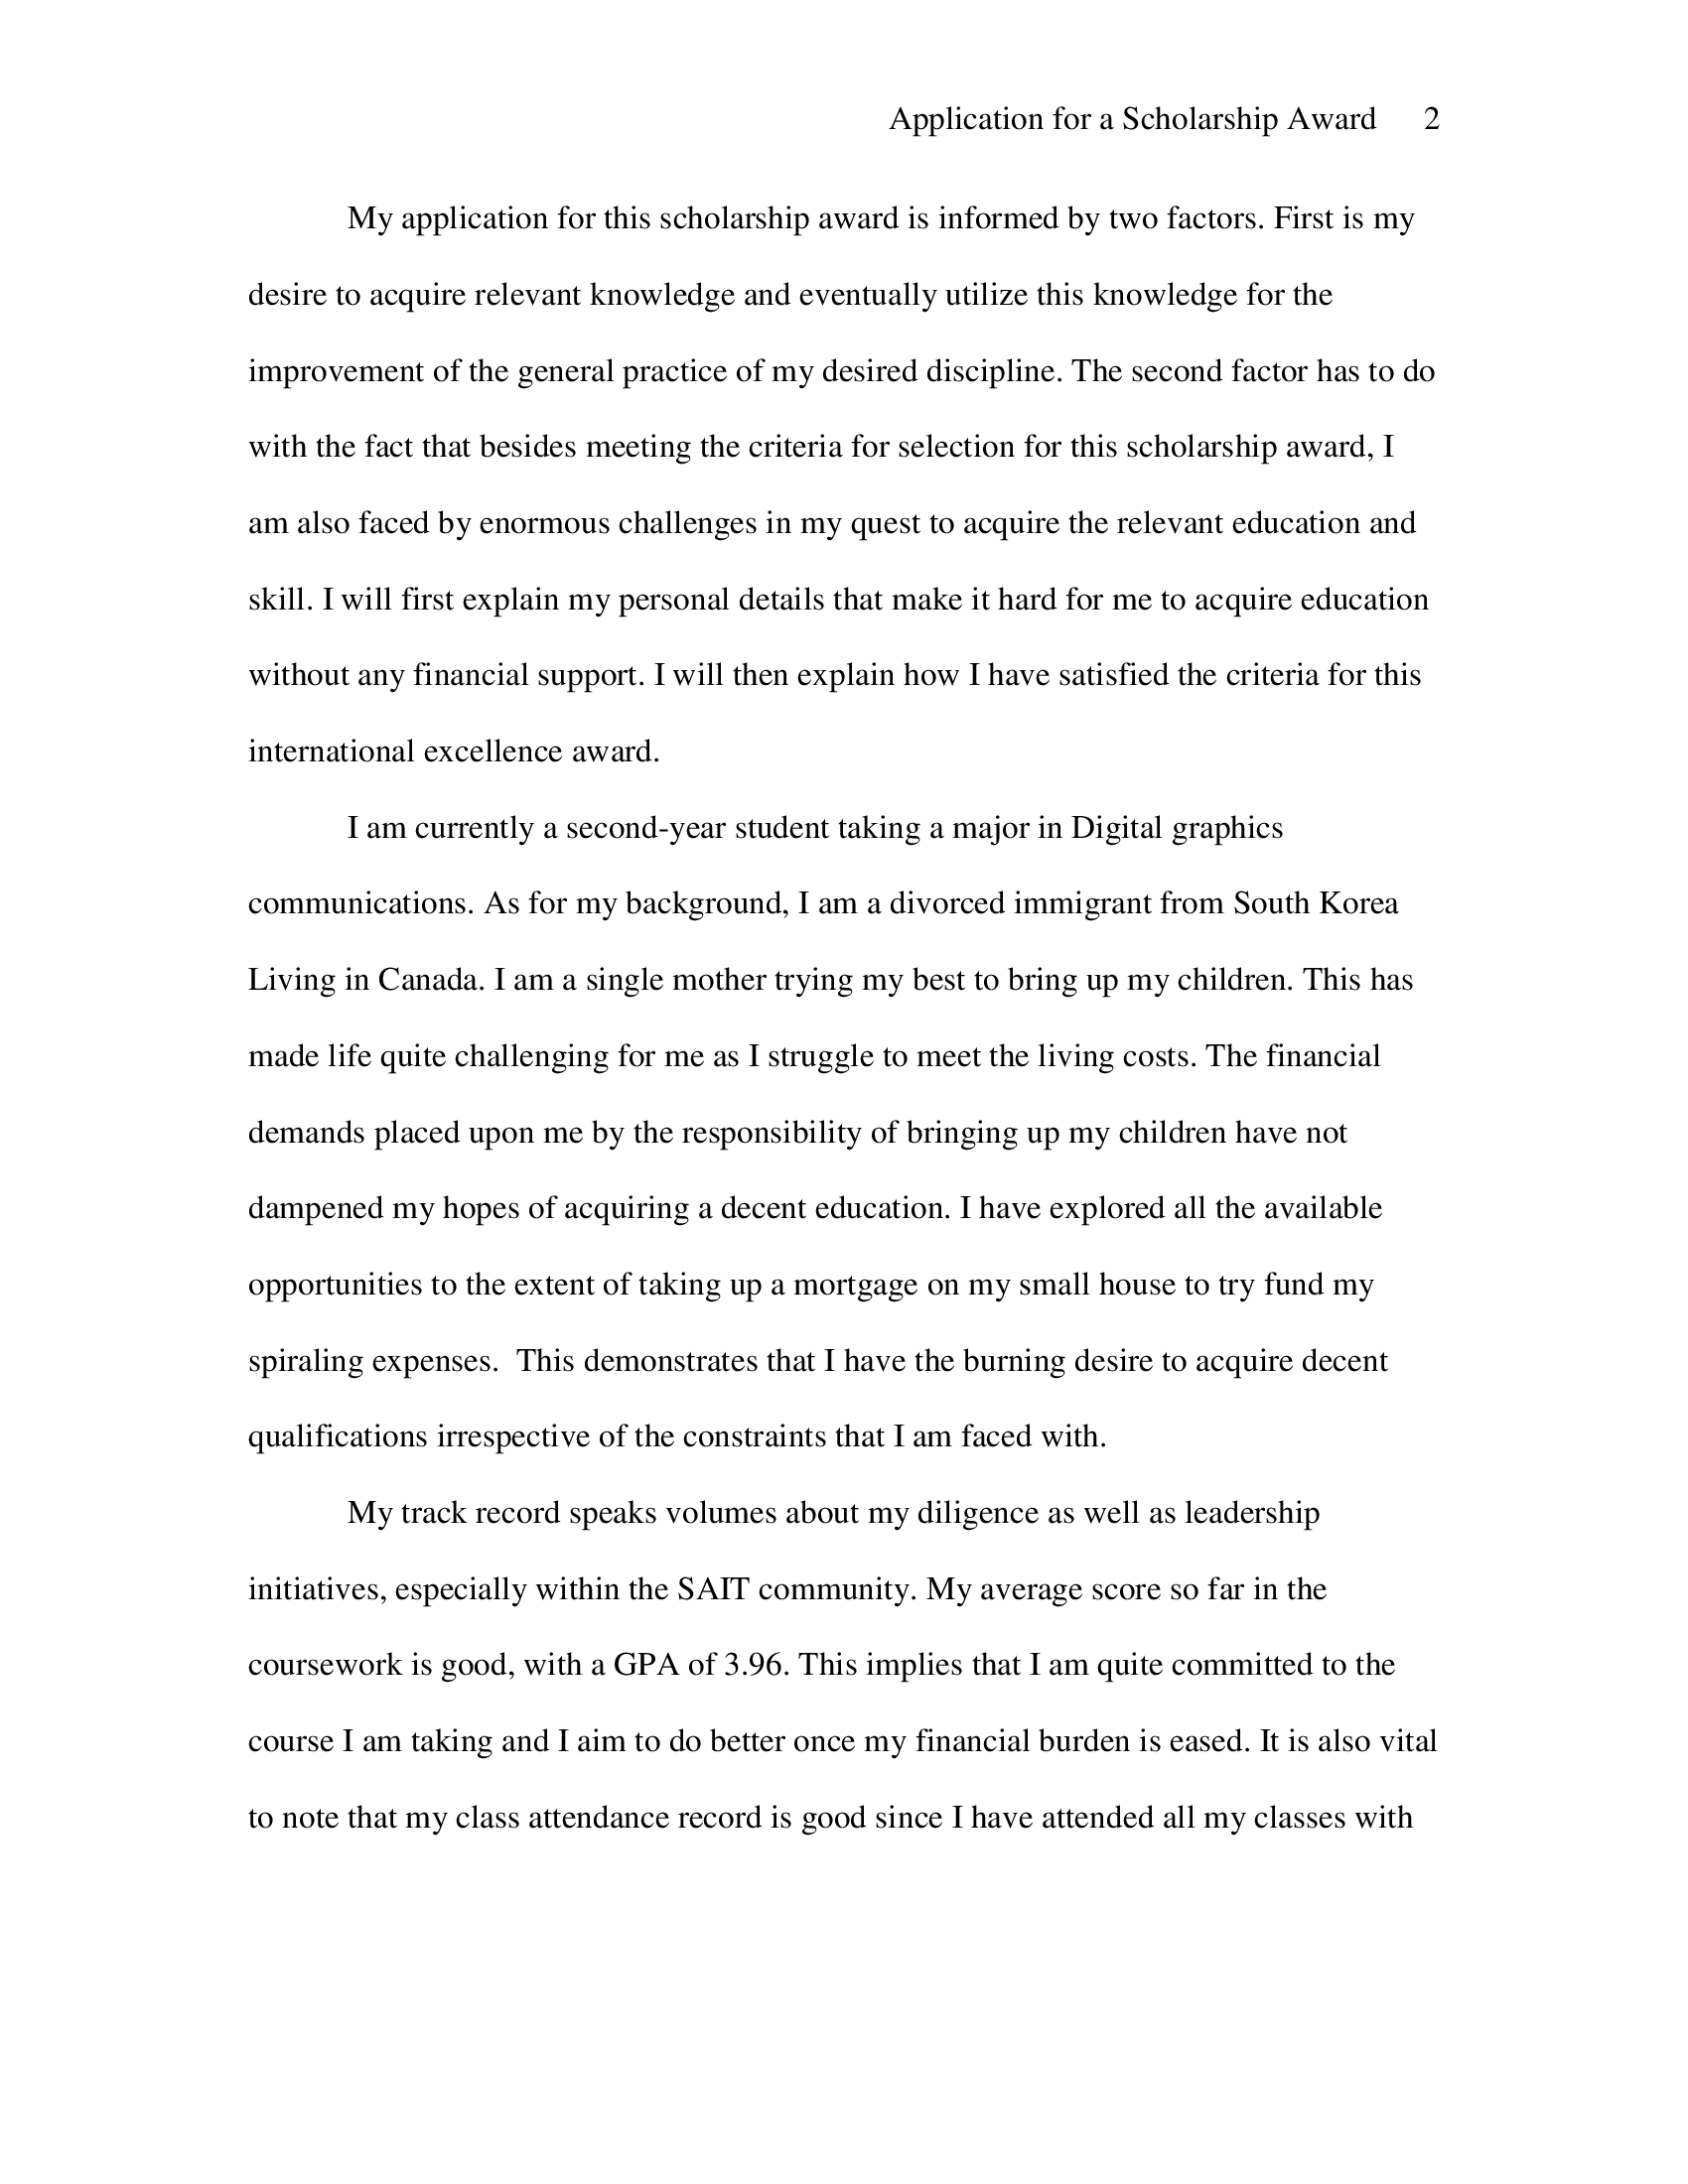 Scholarship Essay Sample about Why I Deserve The Scholarship 2